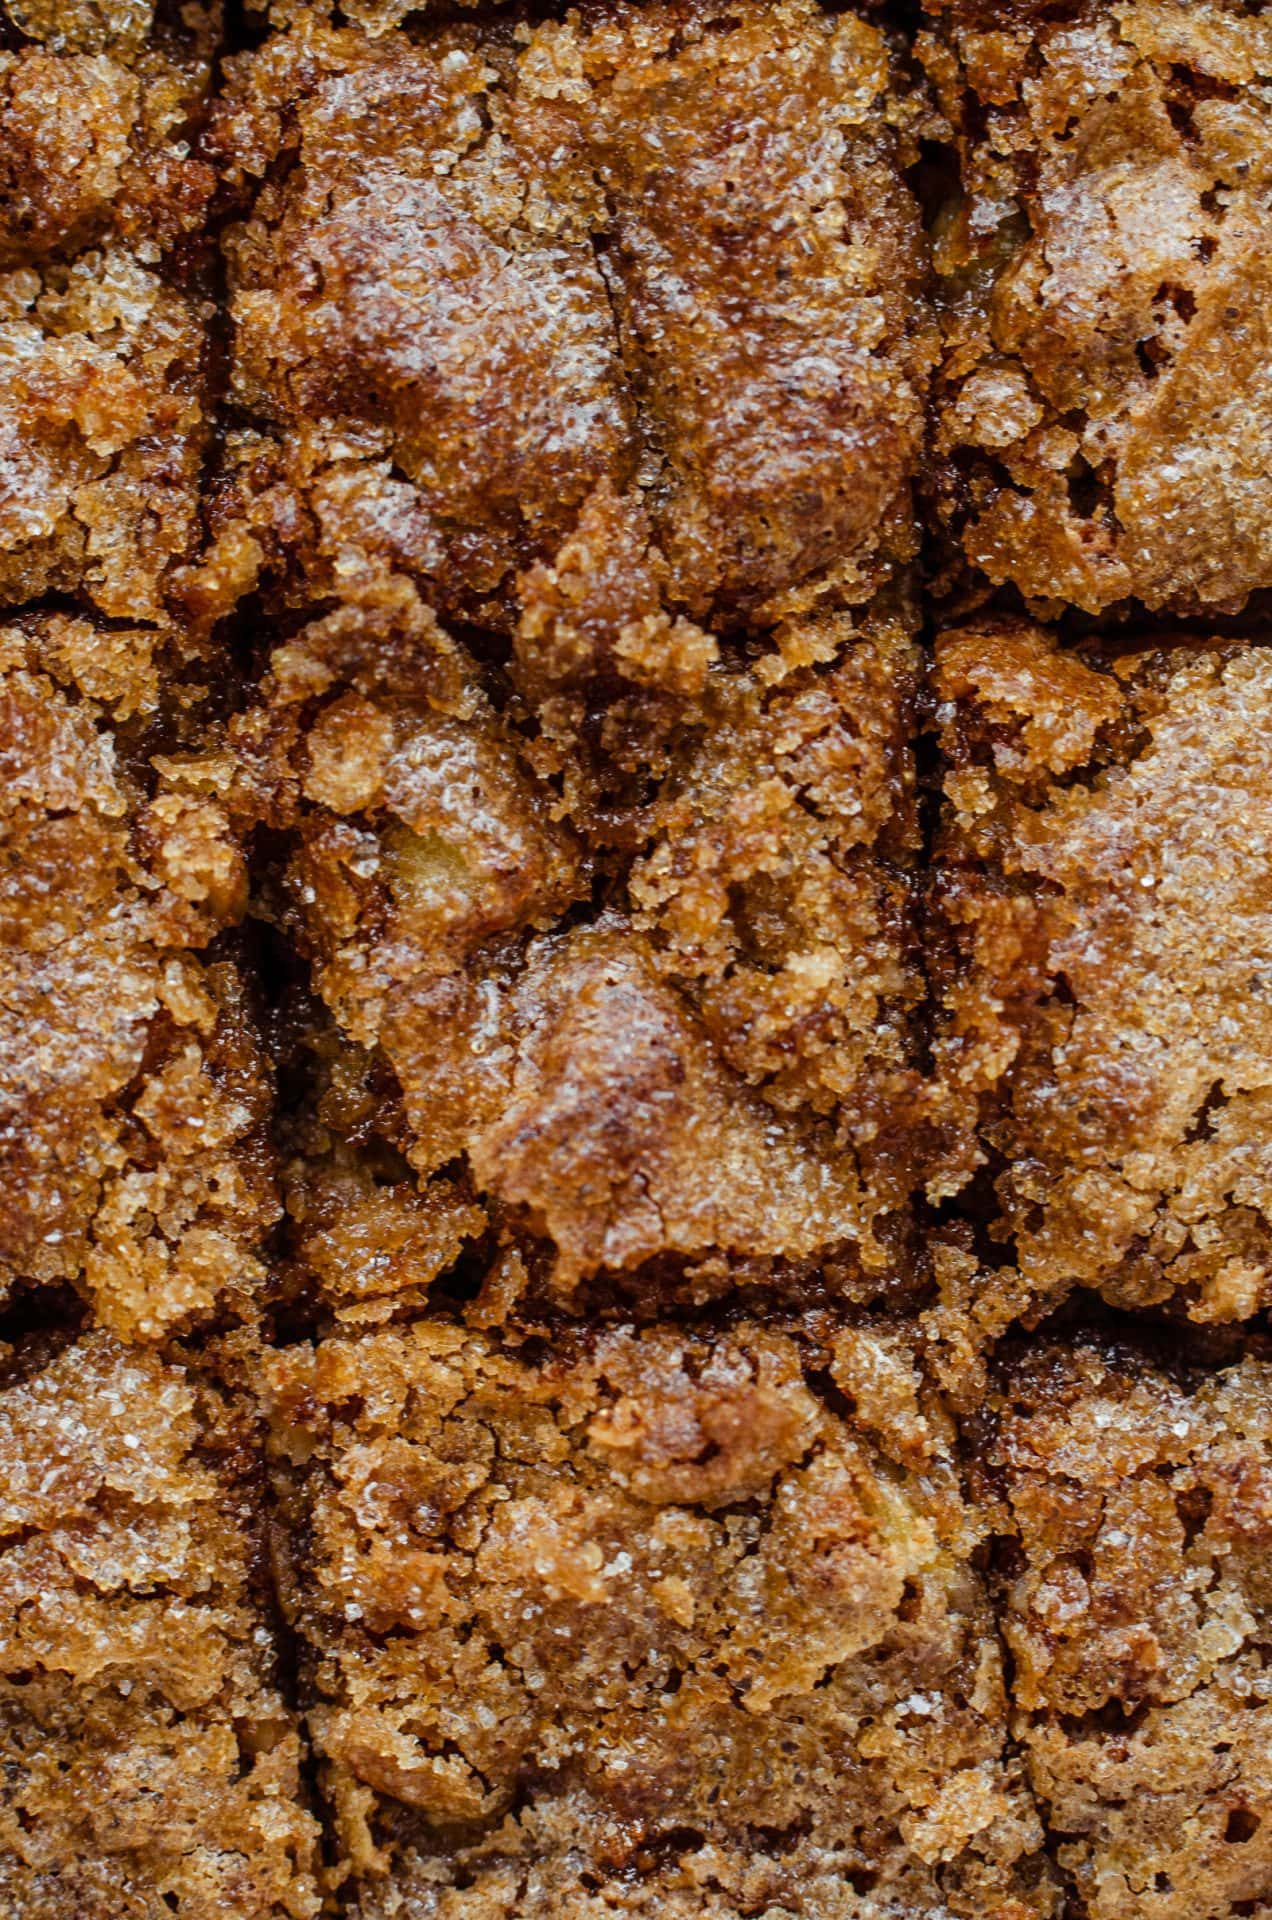 An up-close shot of the crunchy sugar topping on baked banana bread.